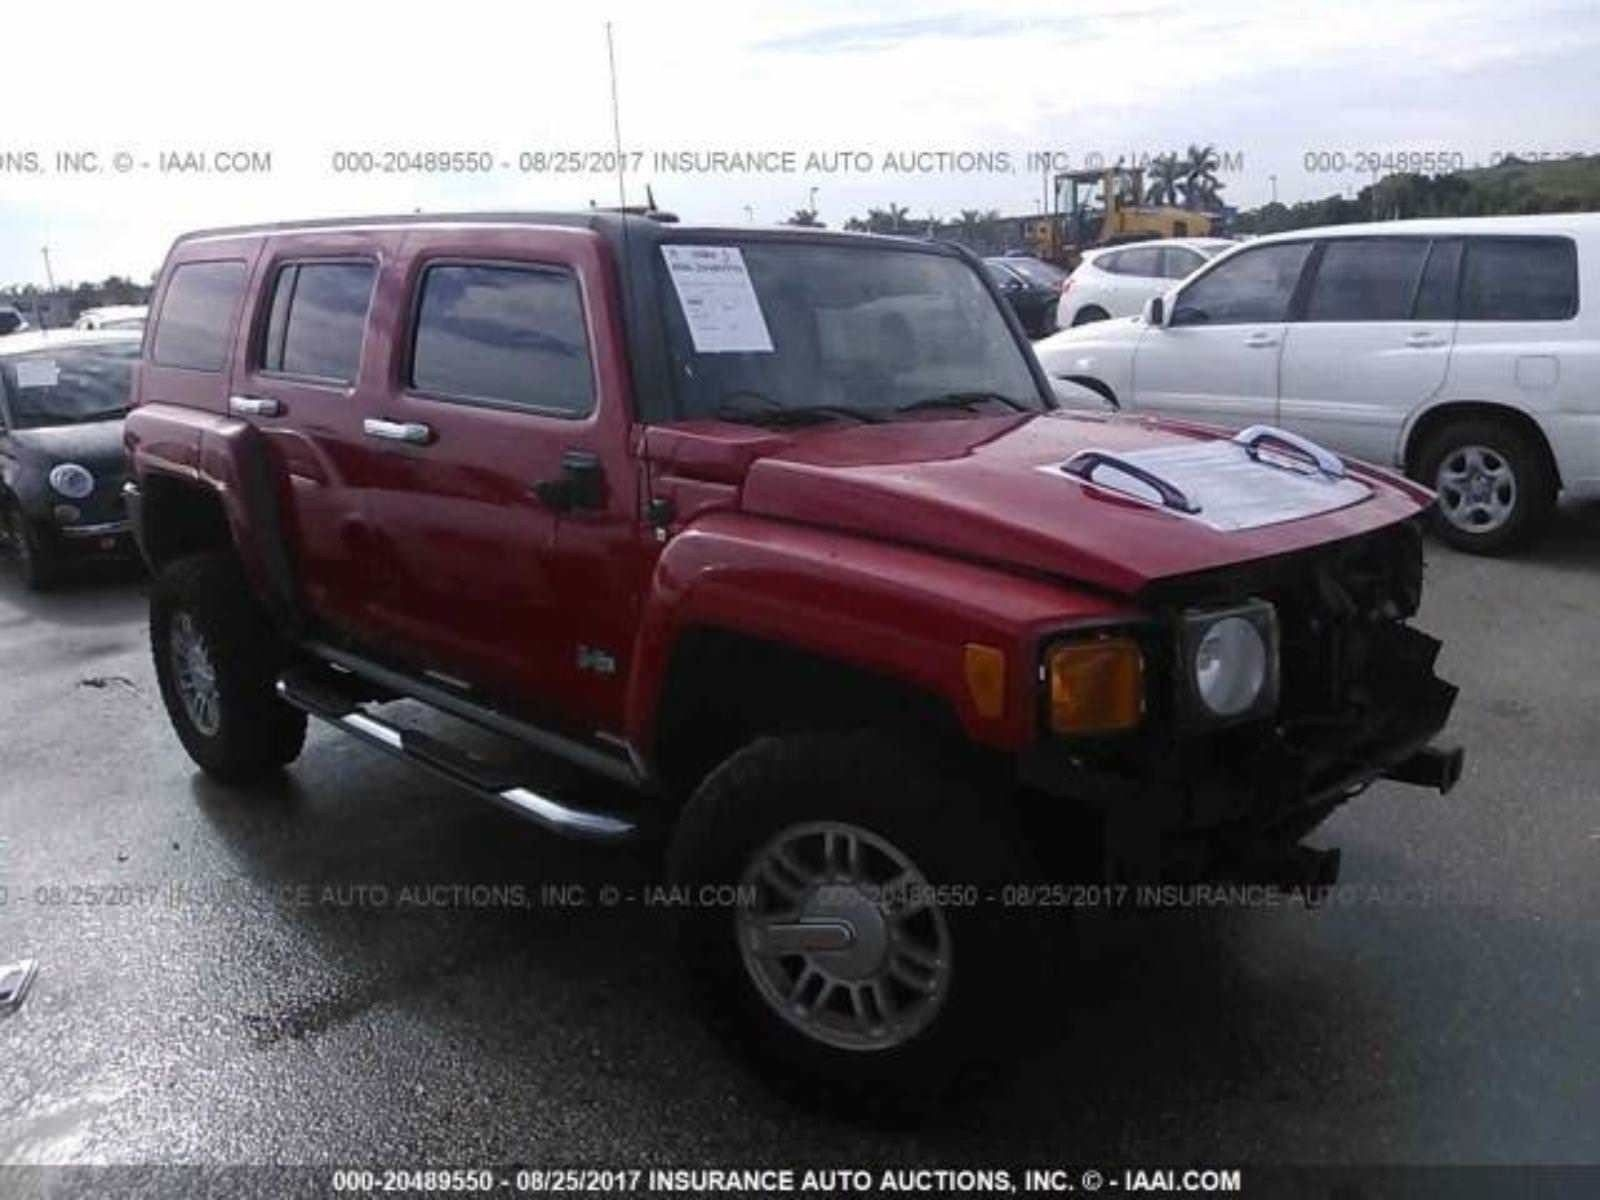 2006 Hummer H3 Parts Diagrams Used Hummer H3 Automatic Transmission & Parts for Sale Of 2006 Hummer H3 Parts Diagrams